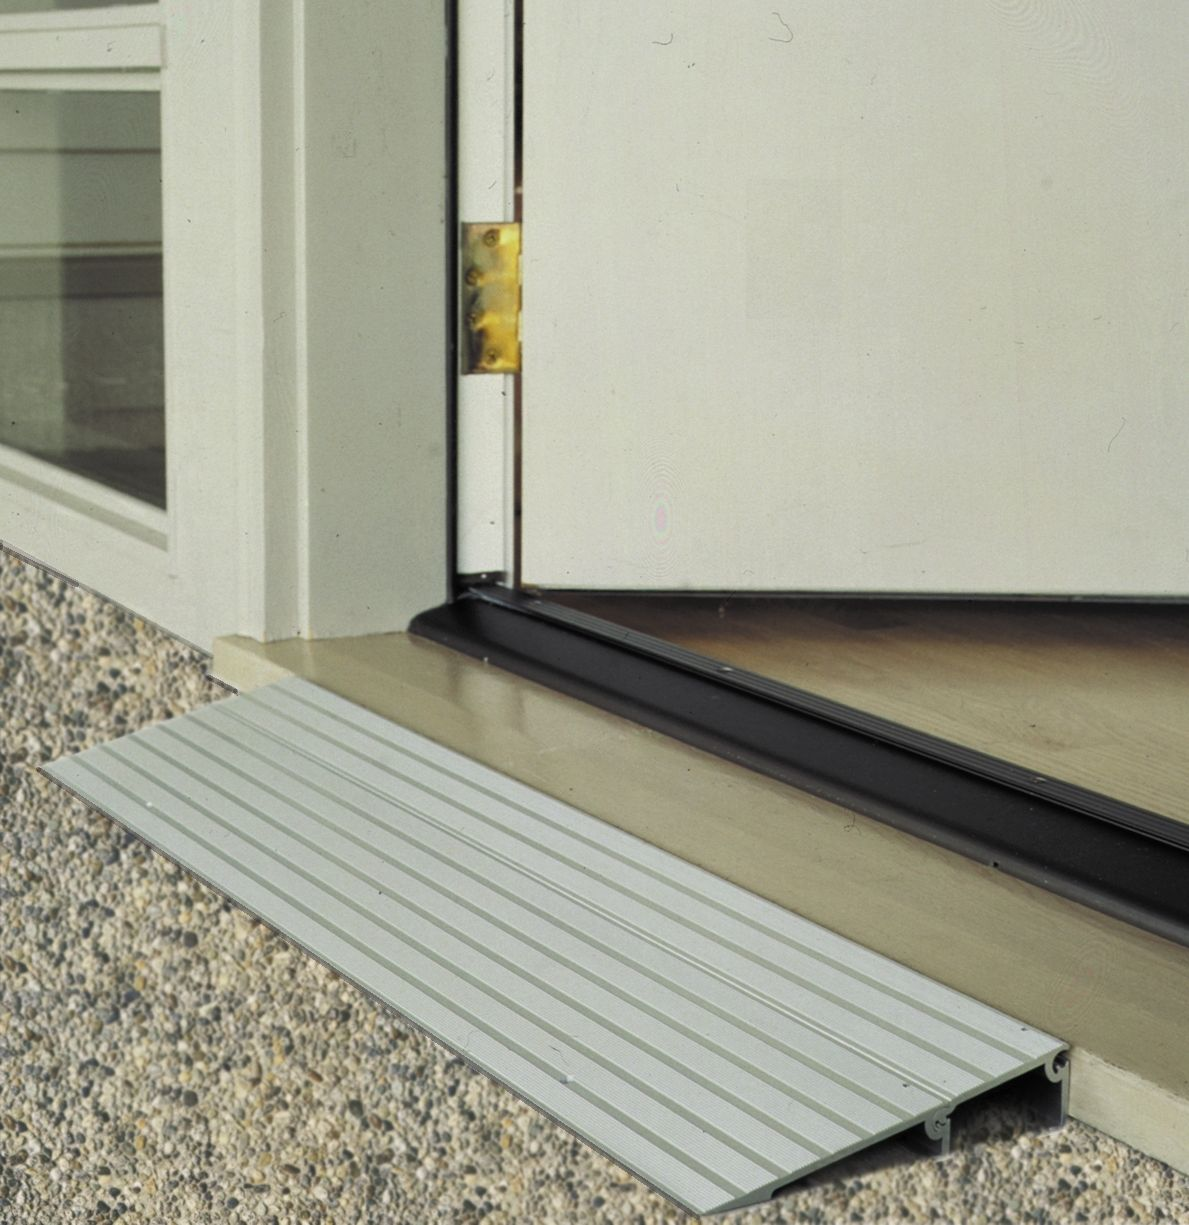 Portable Wheel Chair Bauhaus And Ottoman Ez Access Wheelchair Ramps For Homes Solve Step